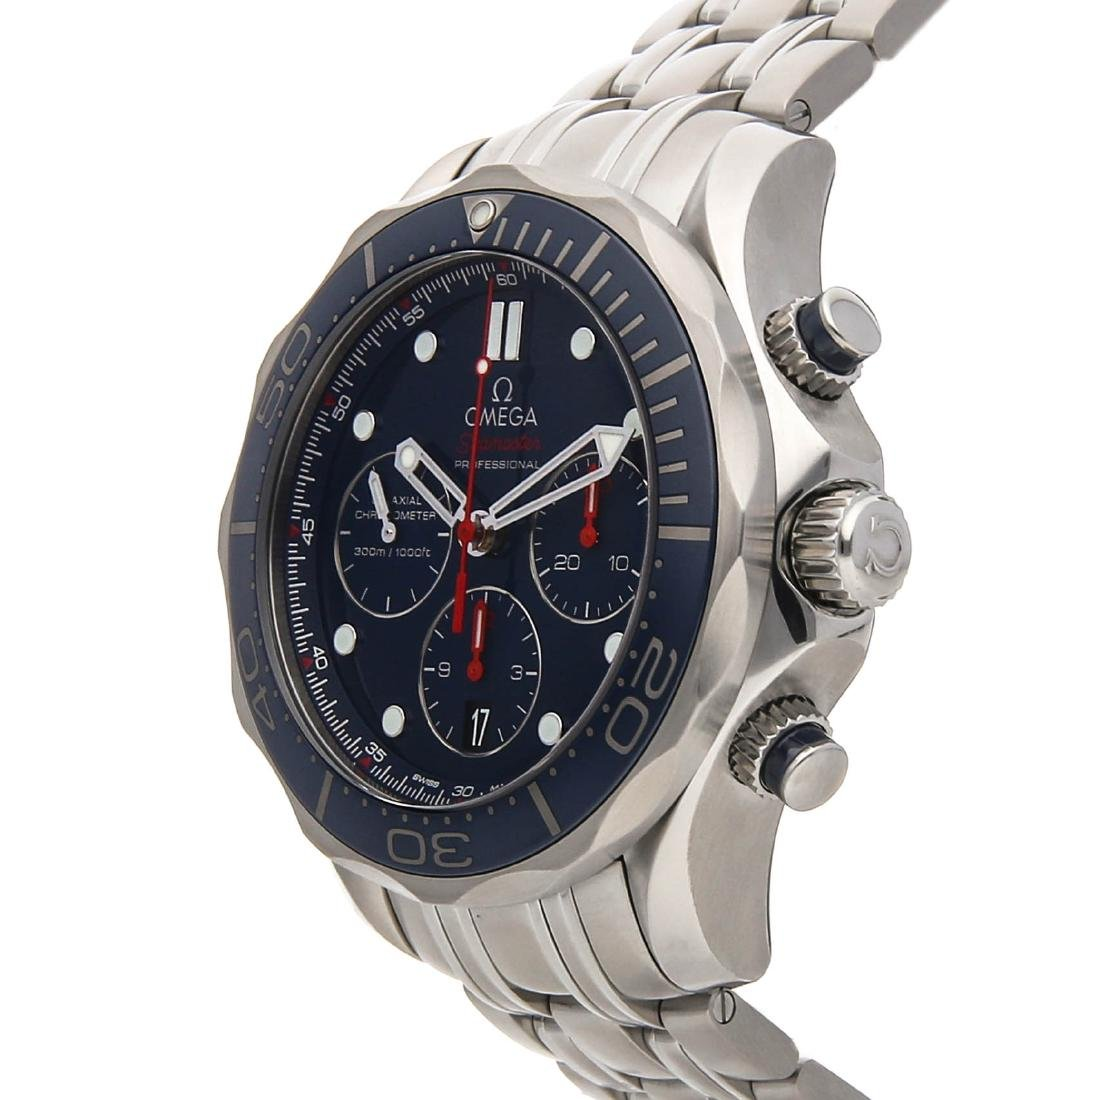 OMEGA SEAMASTER DIVER 300M CO-AXIAL CHRONOGRAPH - 2